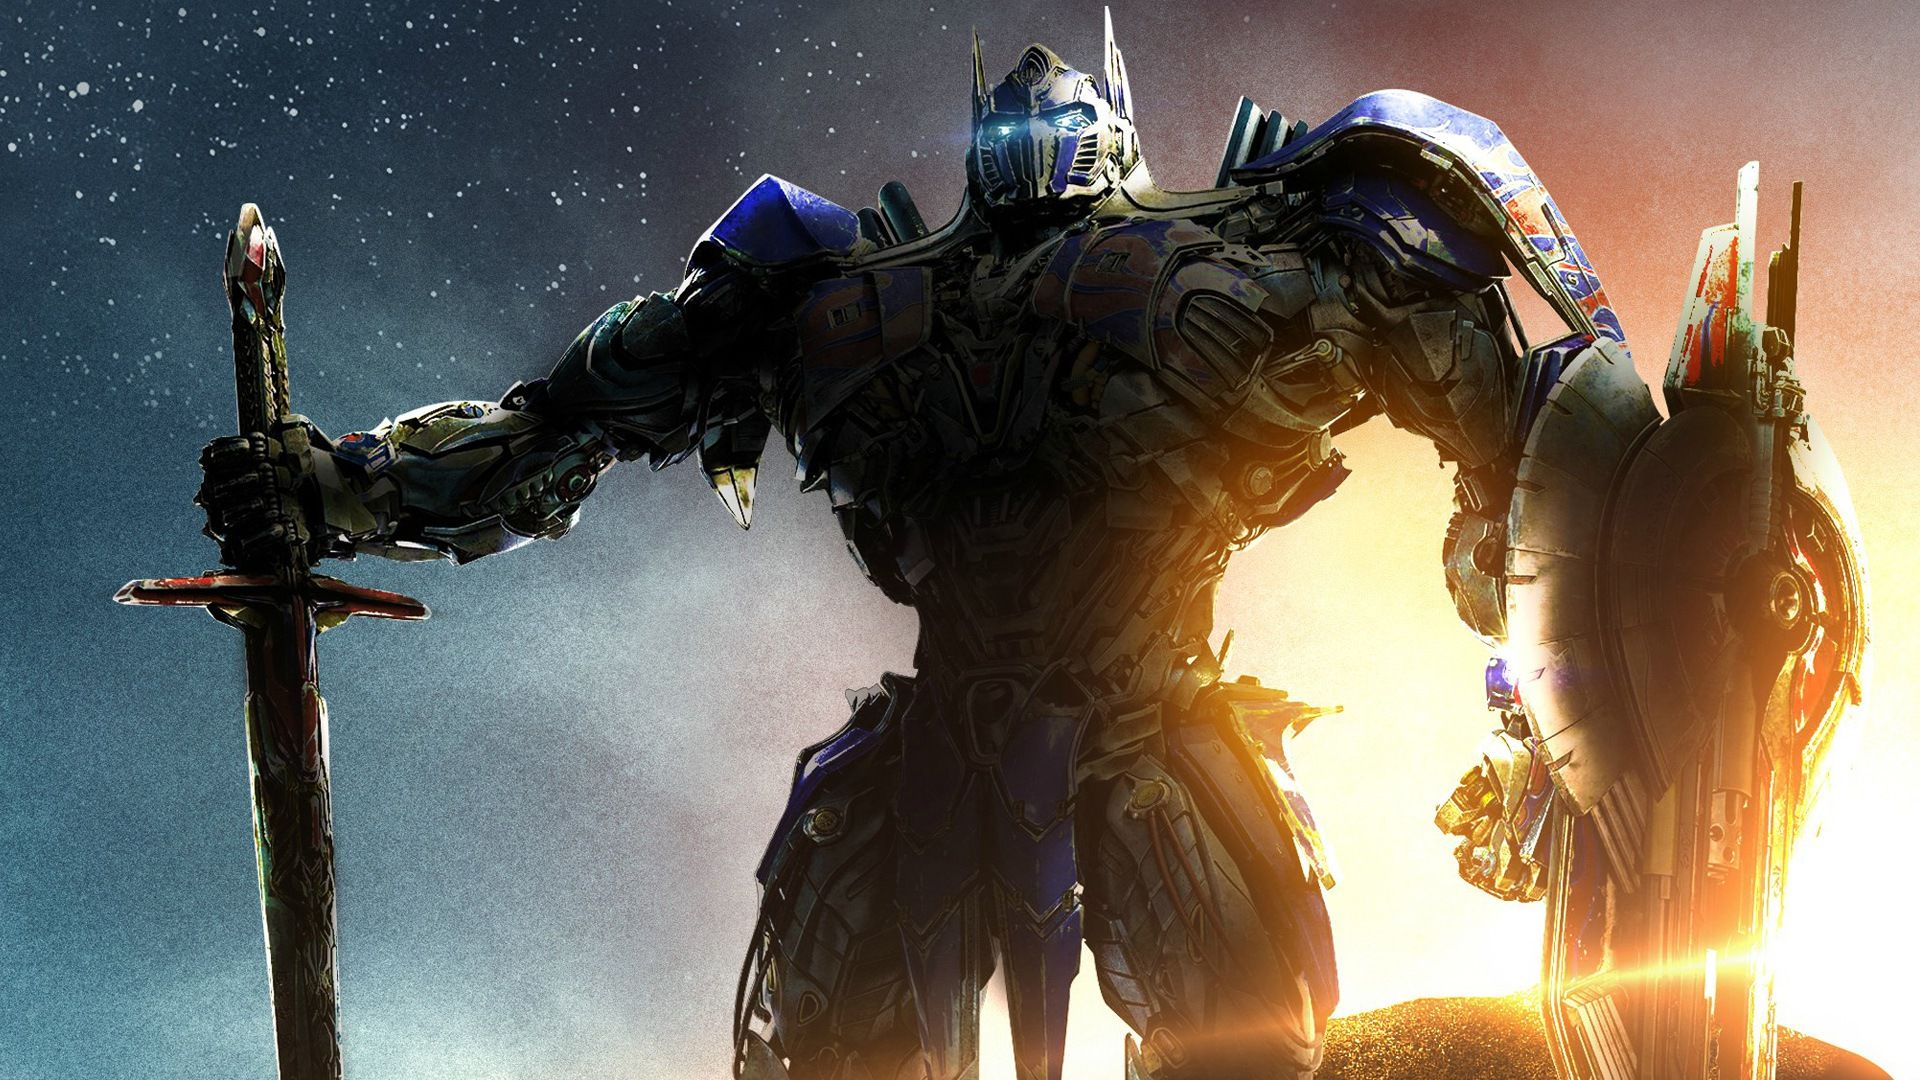 Cool Optimus Prime Transformers The Last Knight 1920x1080